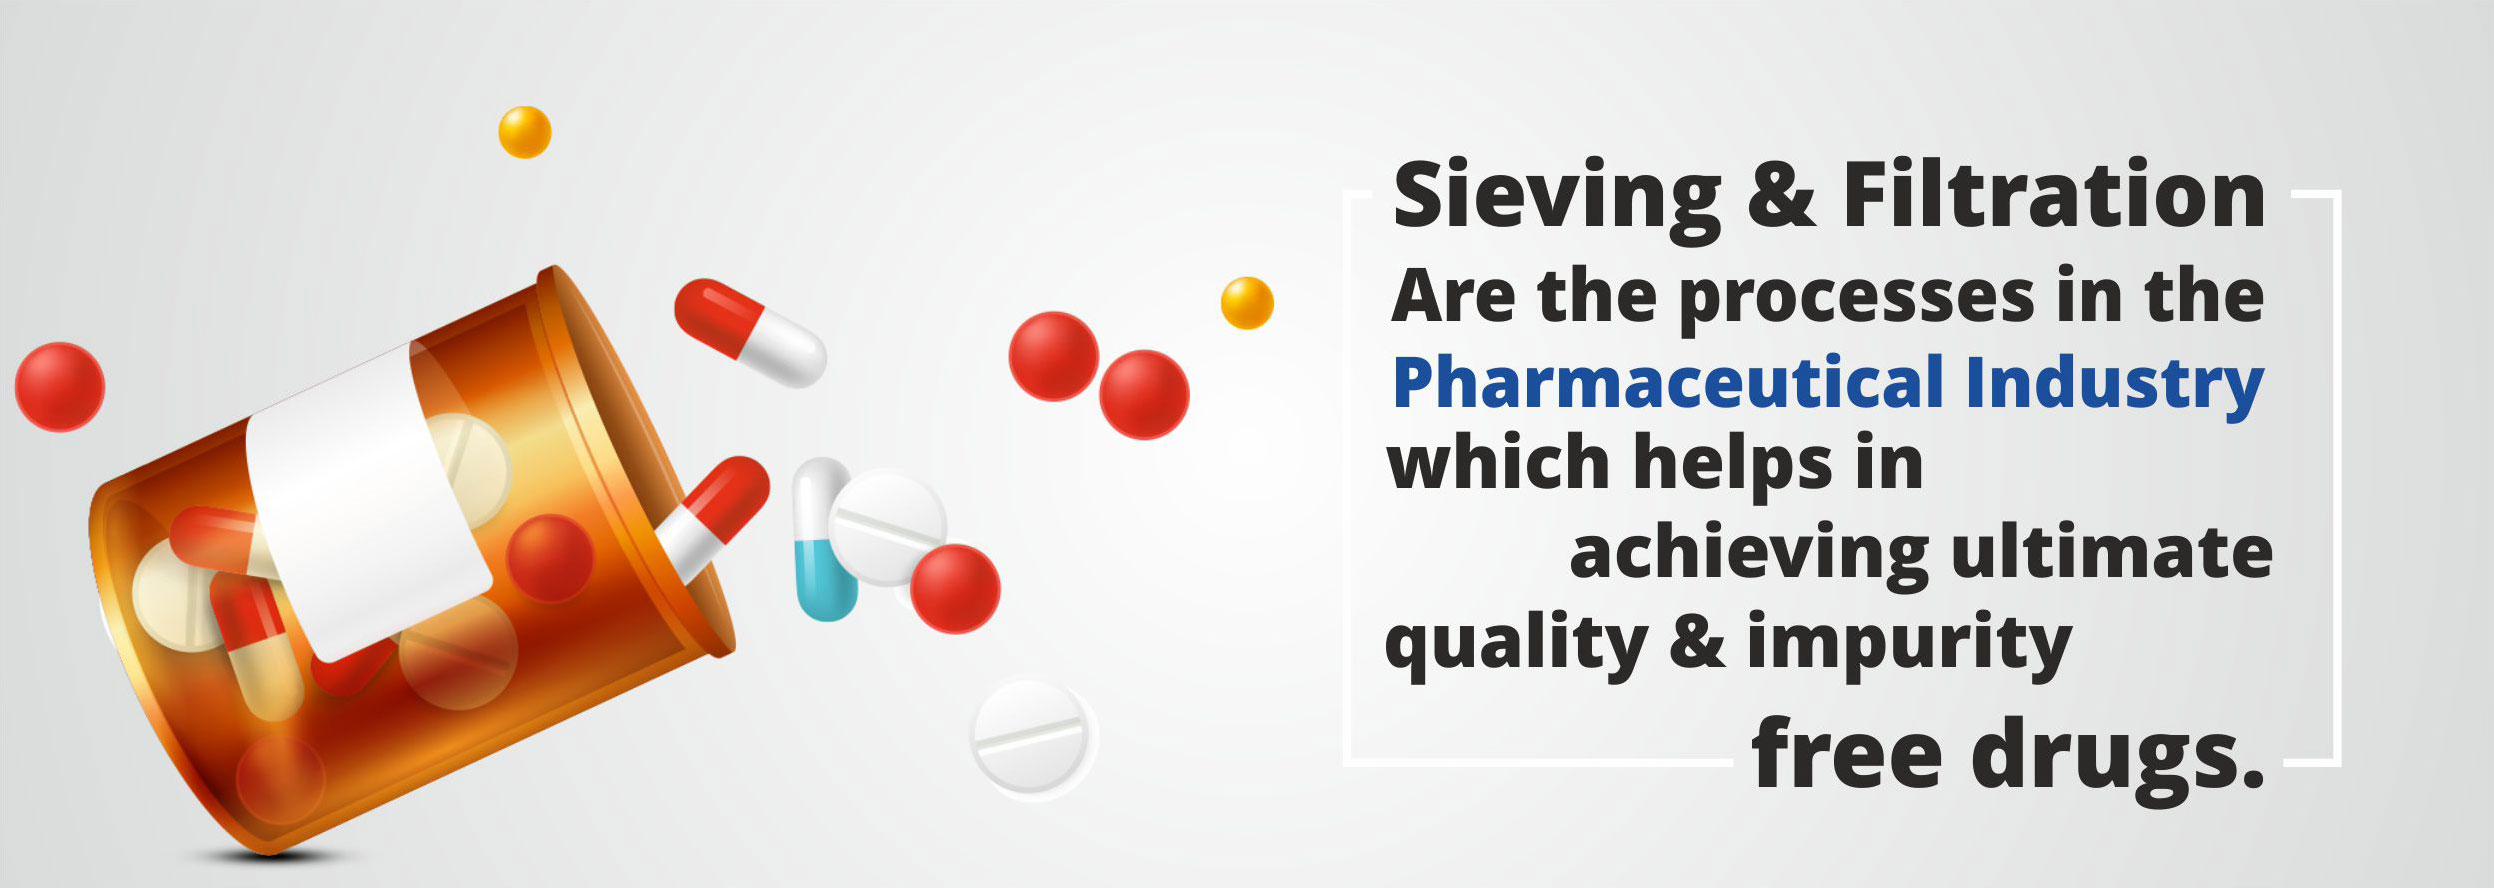 Sieving & Filtration's importance in pharma